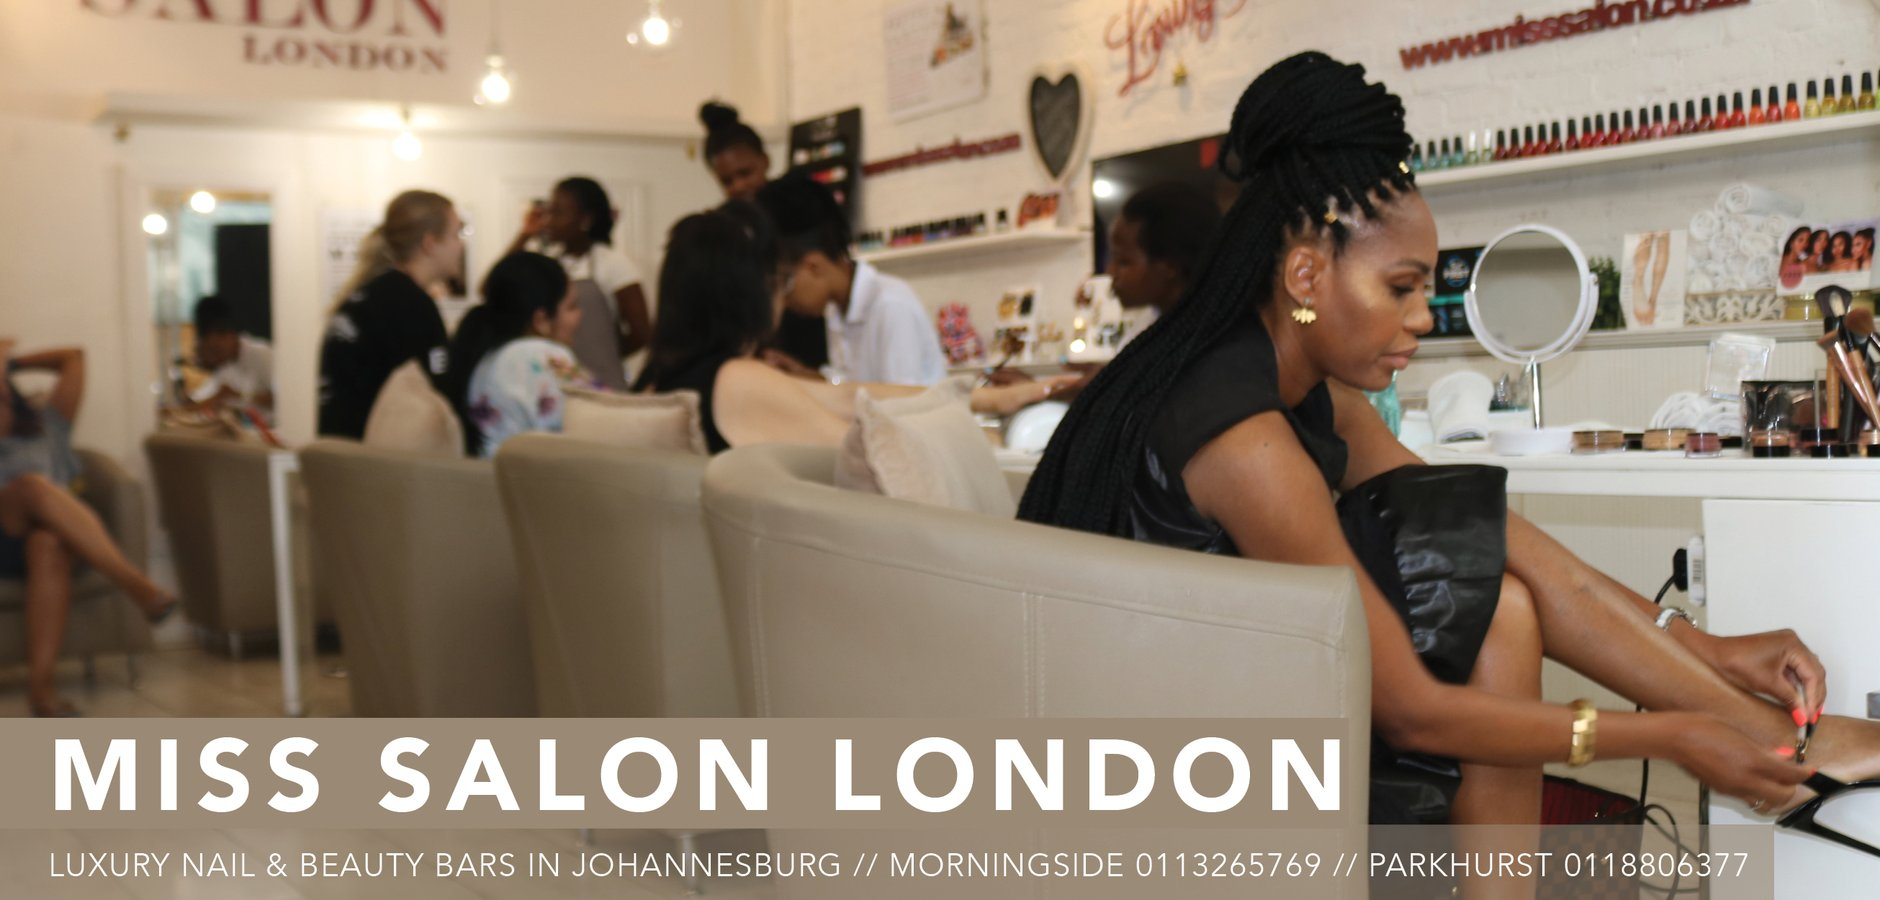 Miss Salon London Morningside Johannesburg 0113265769